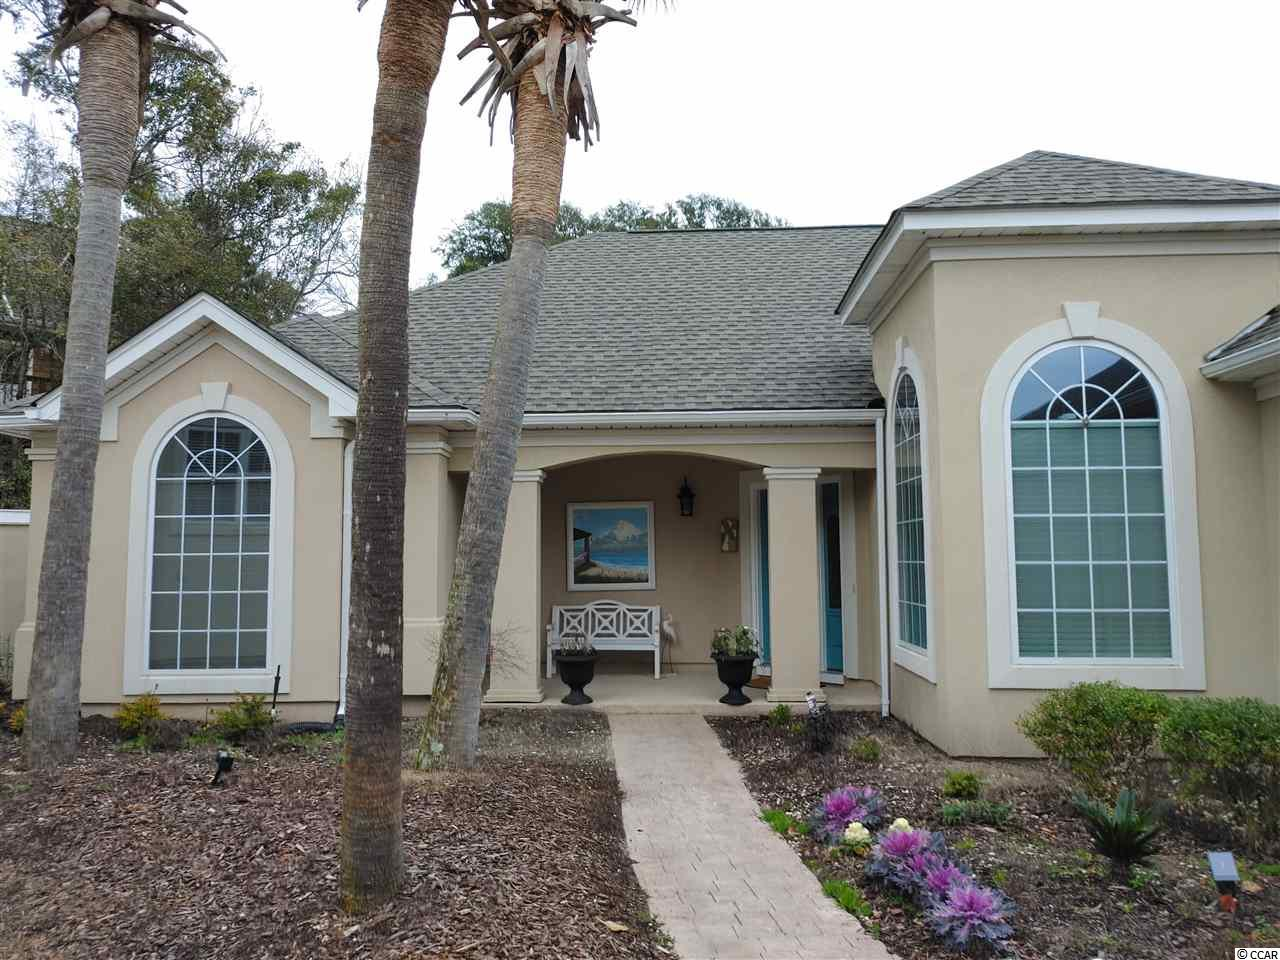 YOUR Private Oasis by the Sea!  A well maintained, professionally decorated-furnished, POOL home located in the gated community of the Heights at Windy Hill is on the market!. Located east of Hwy 17, this 3 bedroom, 2 bath home is highlighted by a private backyard oasis with a inground concrete pool new pavers & recently updated landscaping were all completed in 2021. This home has one of the largest yards/lots in the community. With an Open - floor plan concept - the 2100 sq ft floor plan is very desirable! There is plenty of room for the family and for entertaining guests. Designer furnishings complete this home giving you that true Beach Home Vibe. The Roof, HVAC, dishwasher, wood-like tile flooring in bedrooms and hallway, & lighting fixtures throughout the home were all updated in 2015. In 2018, water heater & crown molding throughout the home were installed. Beautiful tile flooring is throughout the living areas, The eat-in kitchen features Corian-style countertops, designer backsplash, ample cabinets with under cabinet lighting, stainless steel appliances, (New refrigerator 2020) breakfast nook, and breakfast bar.  Formal dining room has a designer beach chandelier and two large windows with palladium accent windows above. While relaxing in the living room, You can cozy up to the gas log fireplace on those chilly nights. There is a spectacular Carolina room with  gorgeous views of the backyard and pool. Your large master bedroom has a walk-in closet, and a door to the Carolina room.  Both guest bedrooms have nice-sized closets and ceiling fans. In the attached 2-car garage, you will find lots of built-in storage cabinets, a mud sink,epoxy flooring, pull-down stairs to attic, and a side door. But the outside is where you meet paradise! The completely fenced backyard is full of beautiful yet low-maintenance RELAX in you inground, concrete 3'-5' deep pool. The right side of the back yard has NEW paver walkway .The left side has a secluded area - the possibilitie